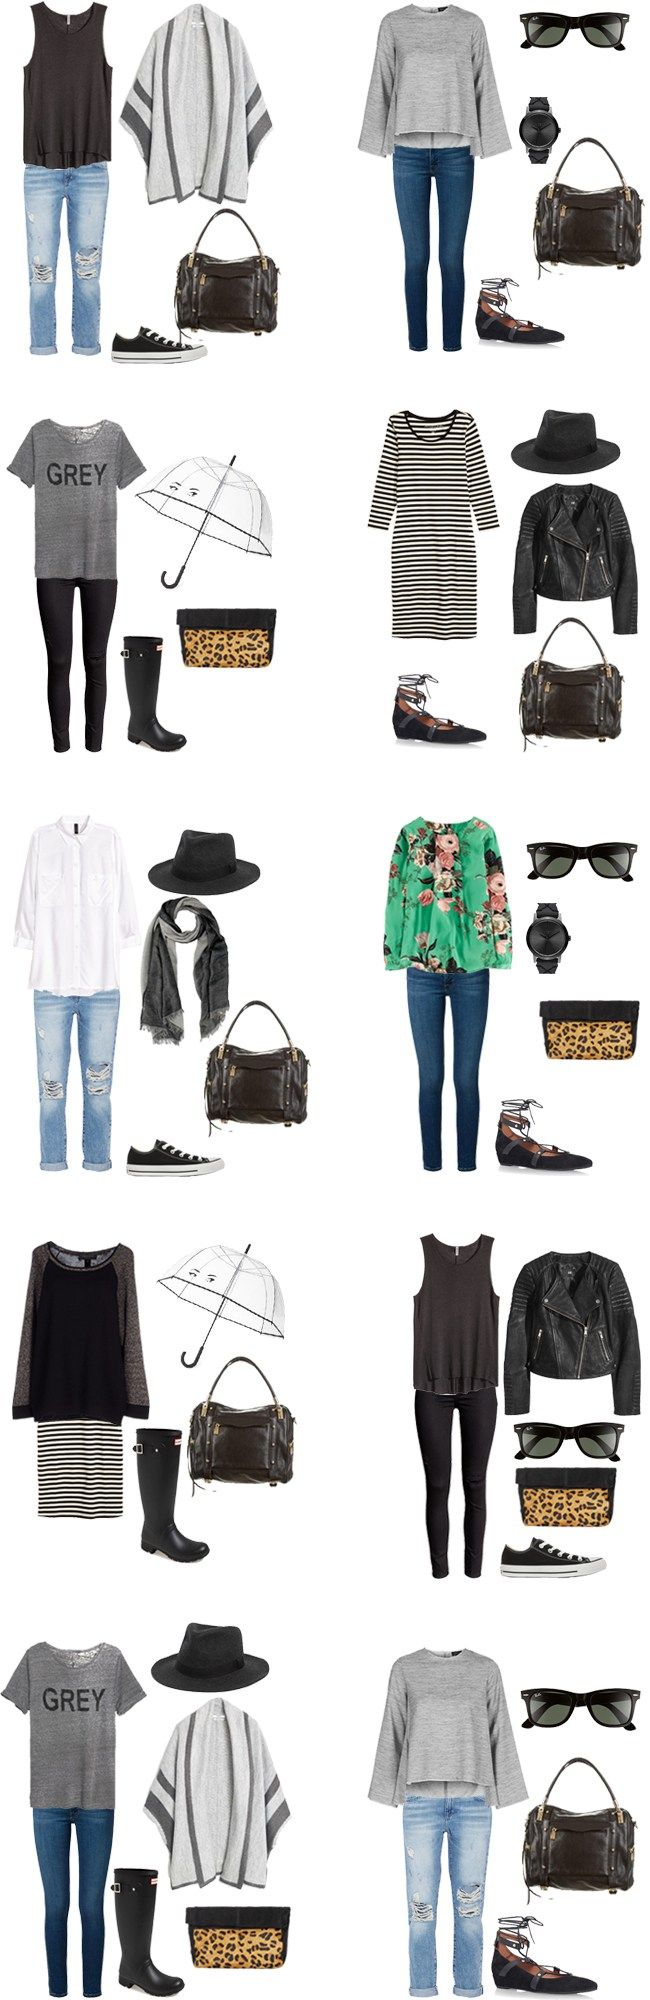 What to Wear in Dublin Outfit Options 1-10 #travellight #packinglight…